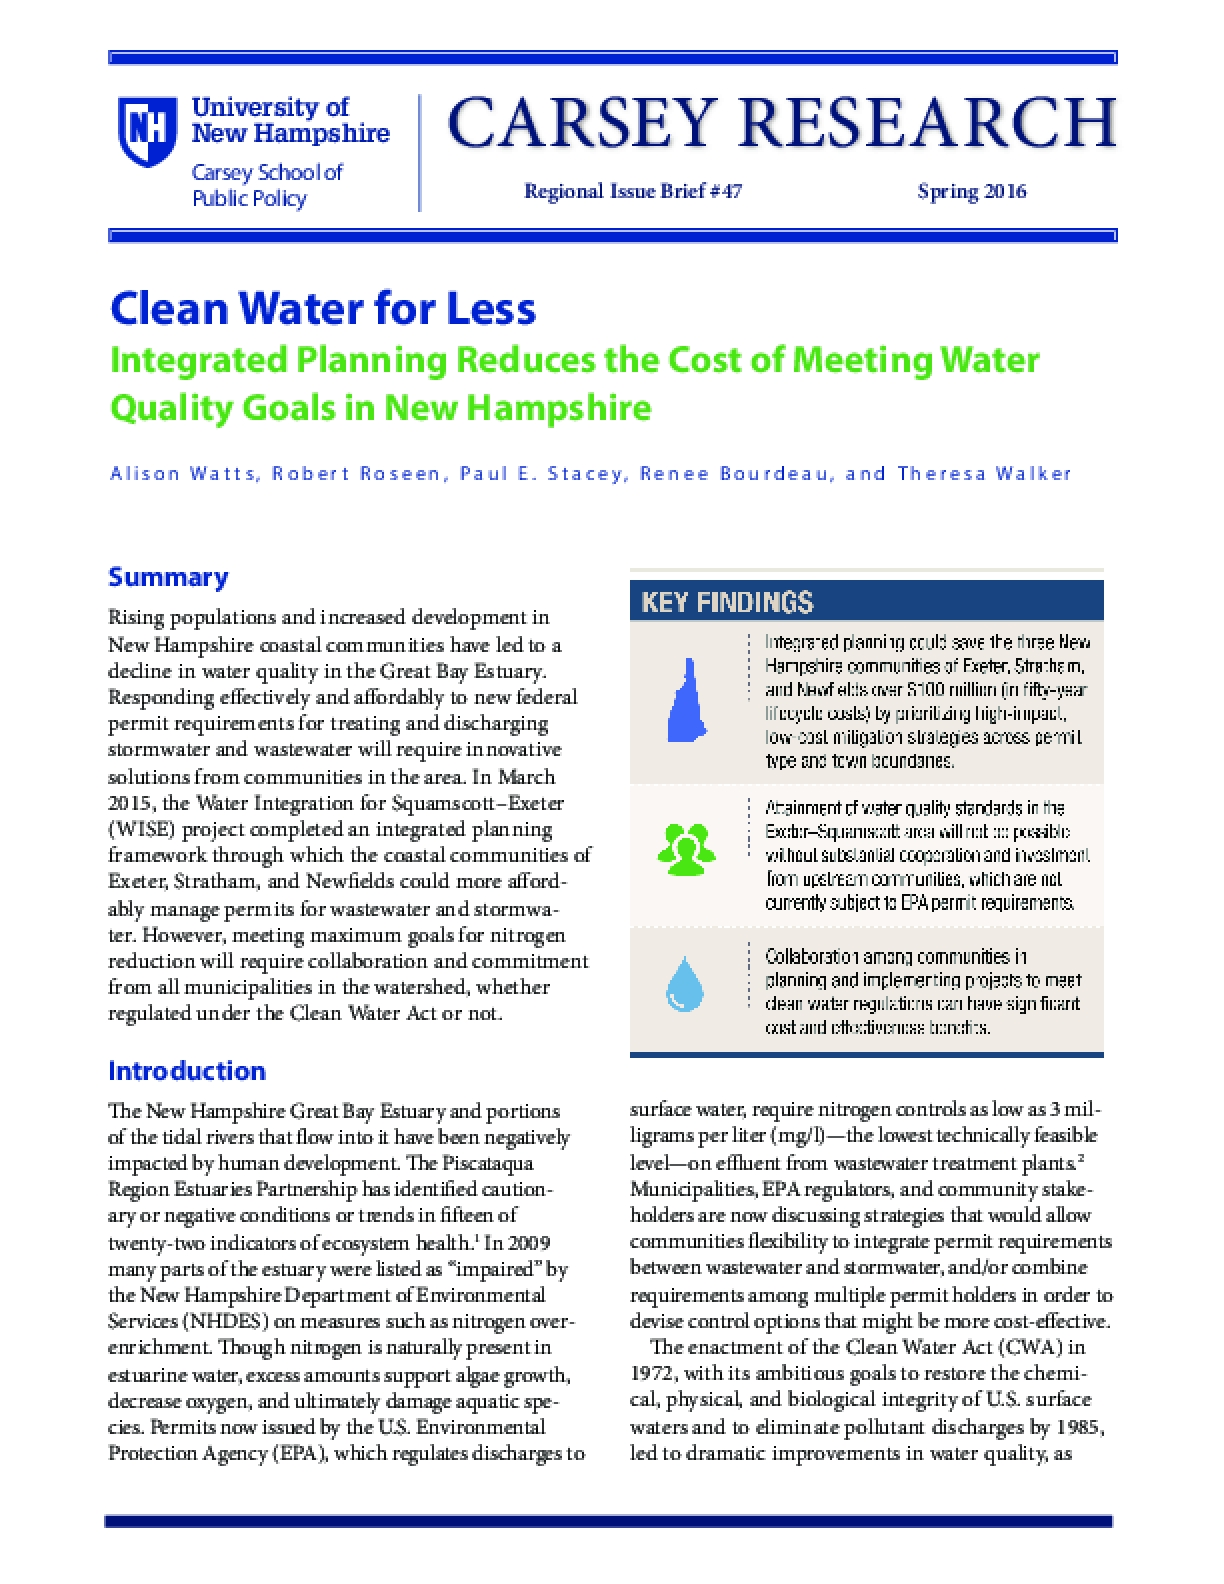 Clean Water for Less